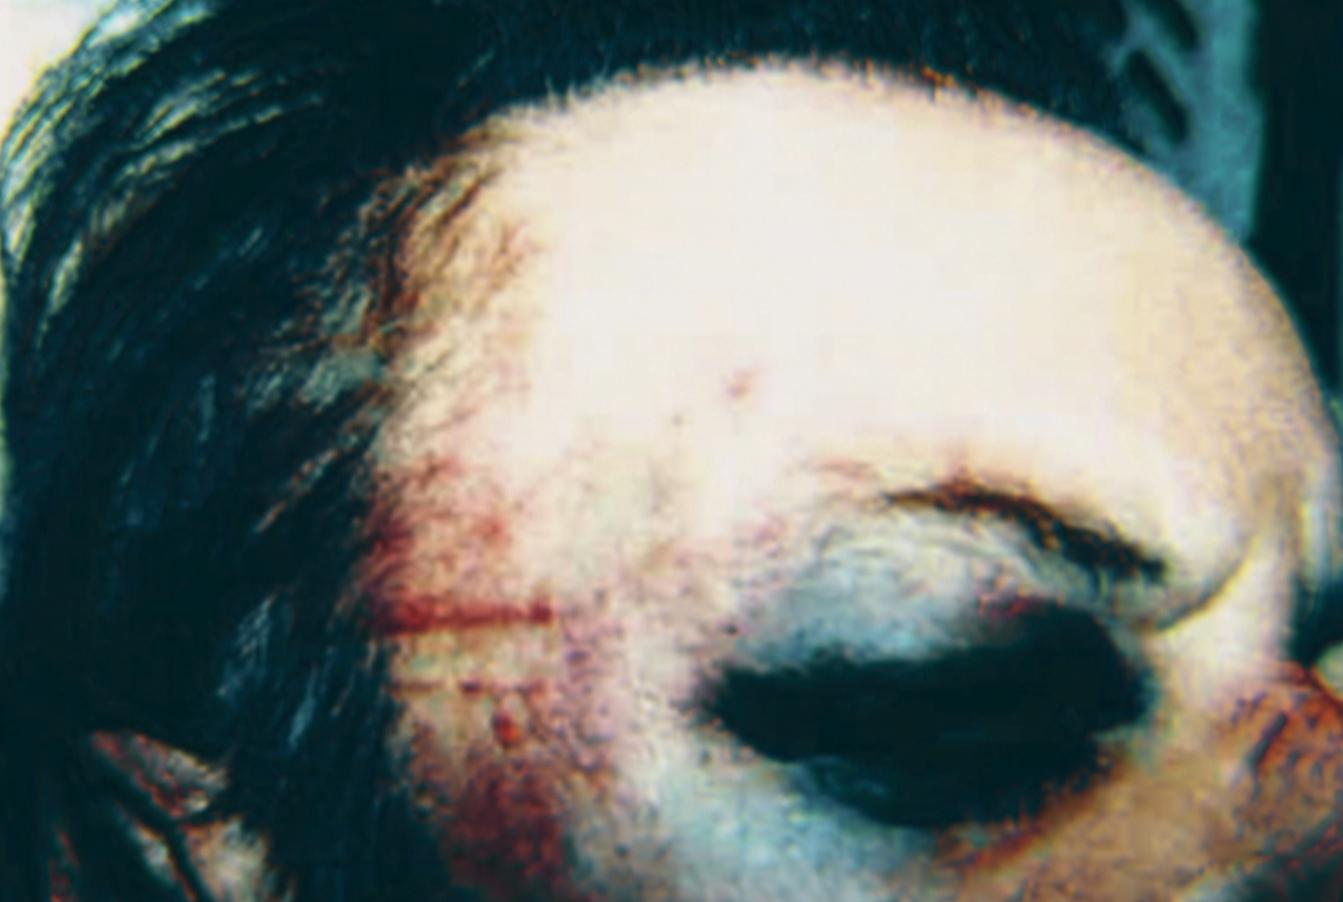 Penner took photos of his injuries after his 2003 arrest. (Submitted by Wayne Penner)